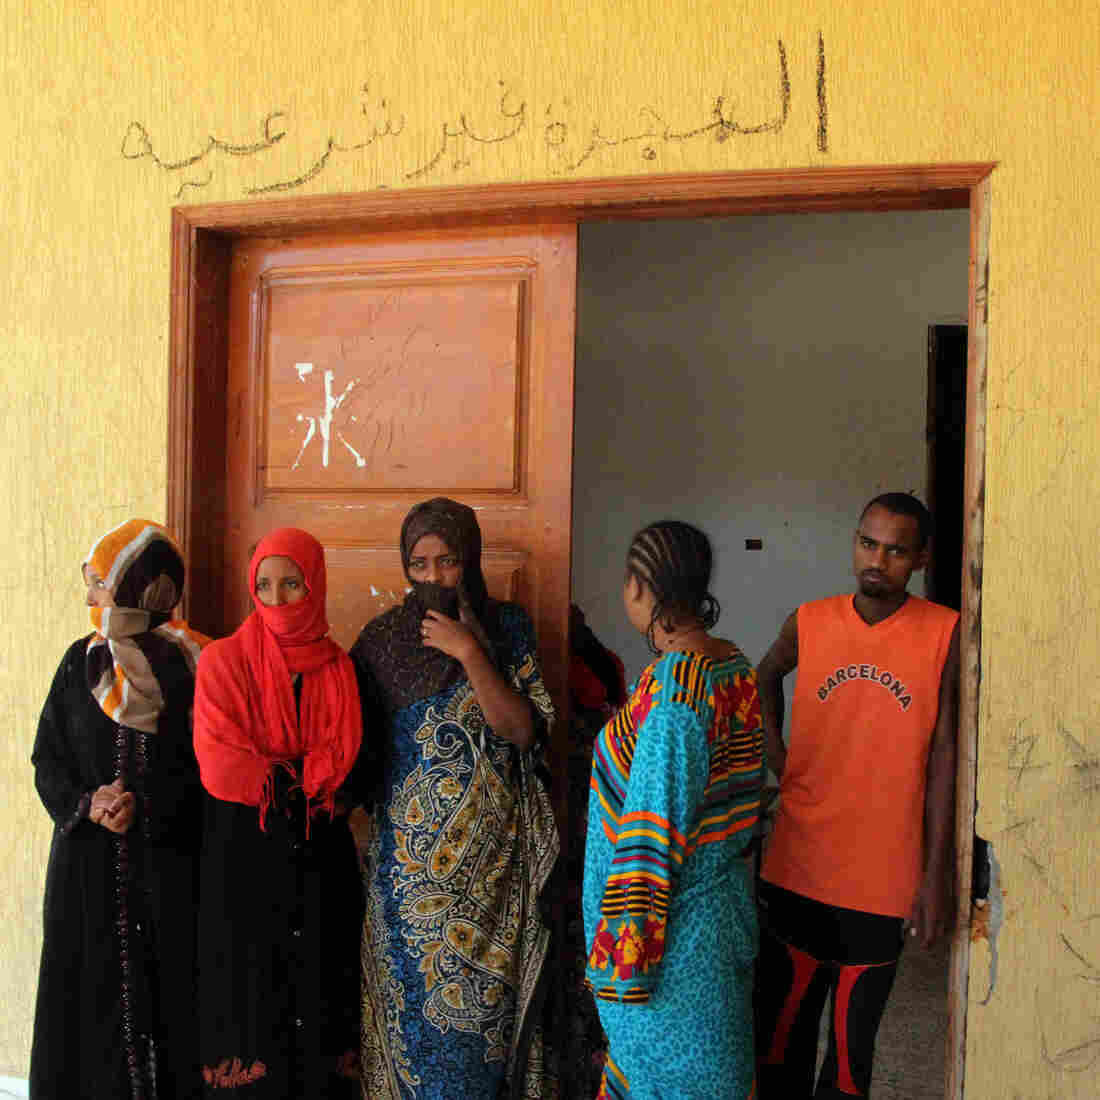 Illegal immigrants captured in the Libyan coastal city of Surman are held at a temporary prison in an eastern district of Tripoli, Libya, on Oct. 19.